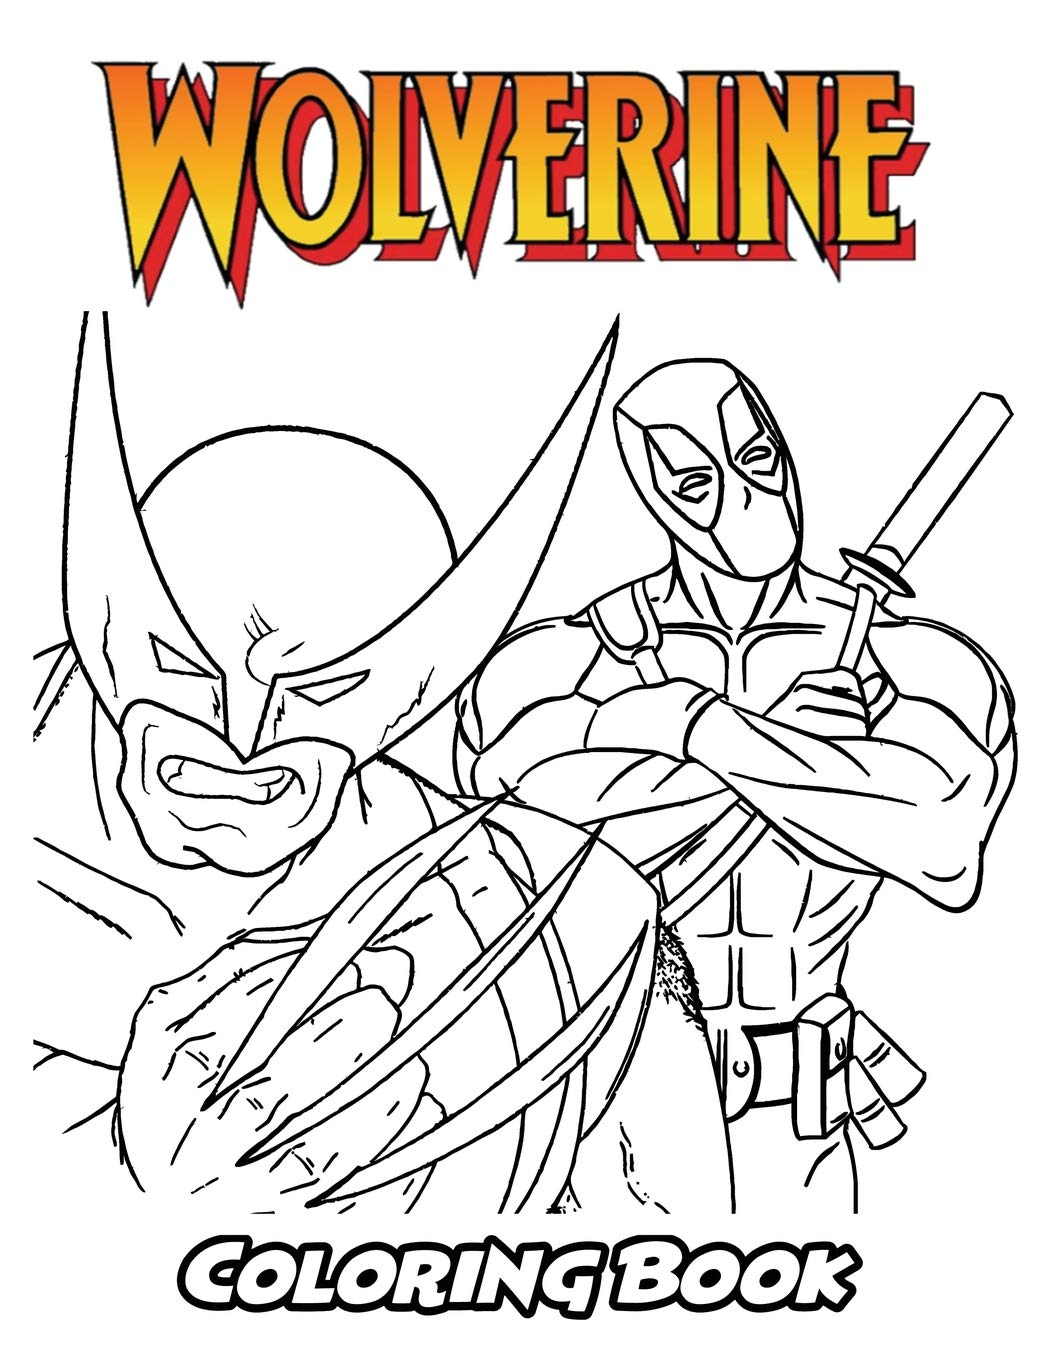 Wolverine coloring book coloring book for kids and adults activity book with fun easy and relaxing coloring pages perfect for children ages 3 5 6 8